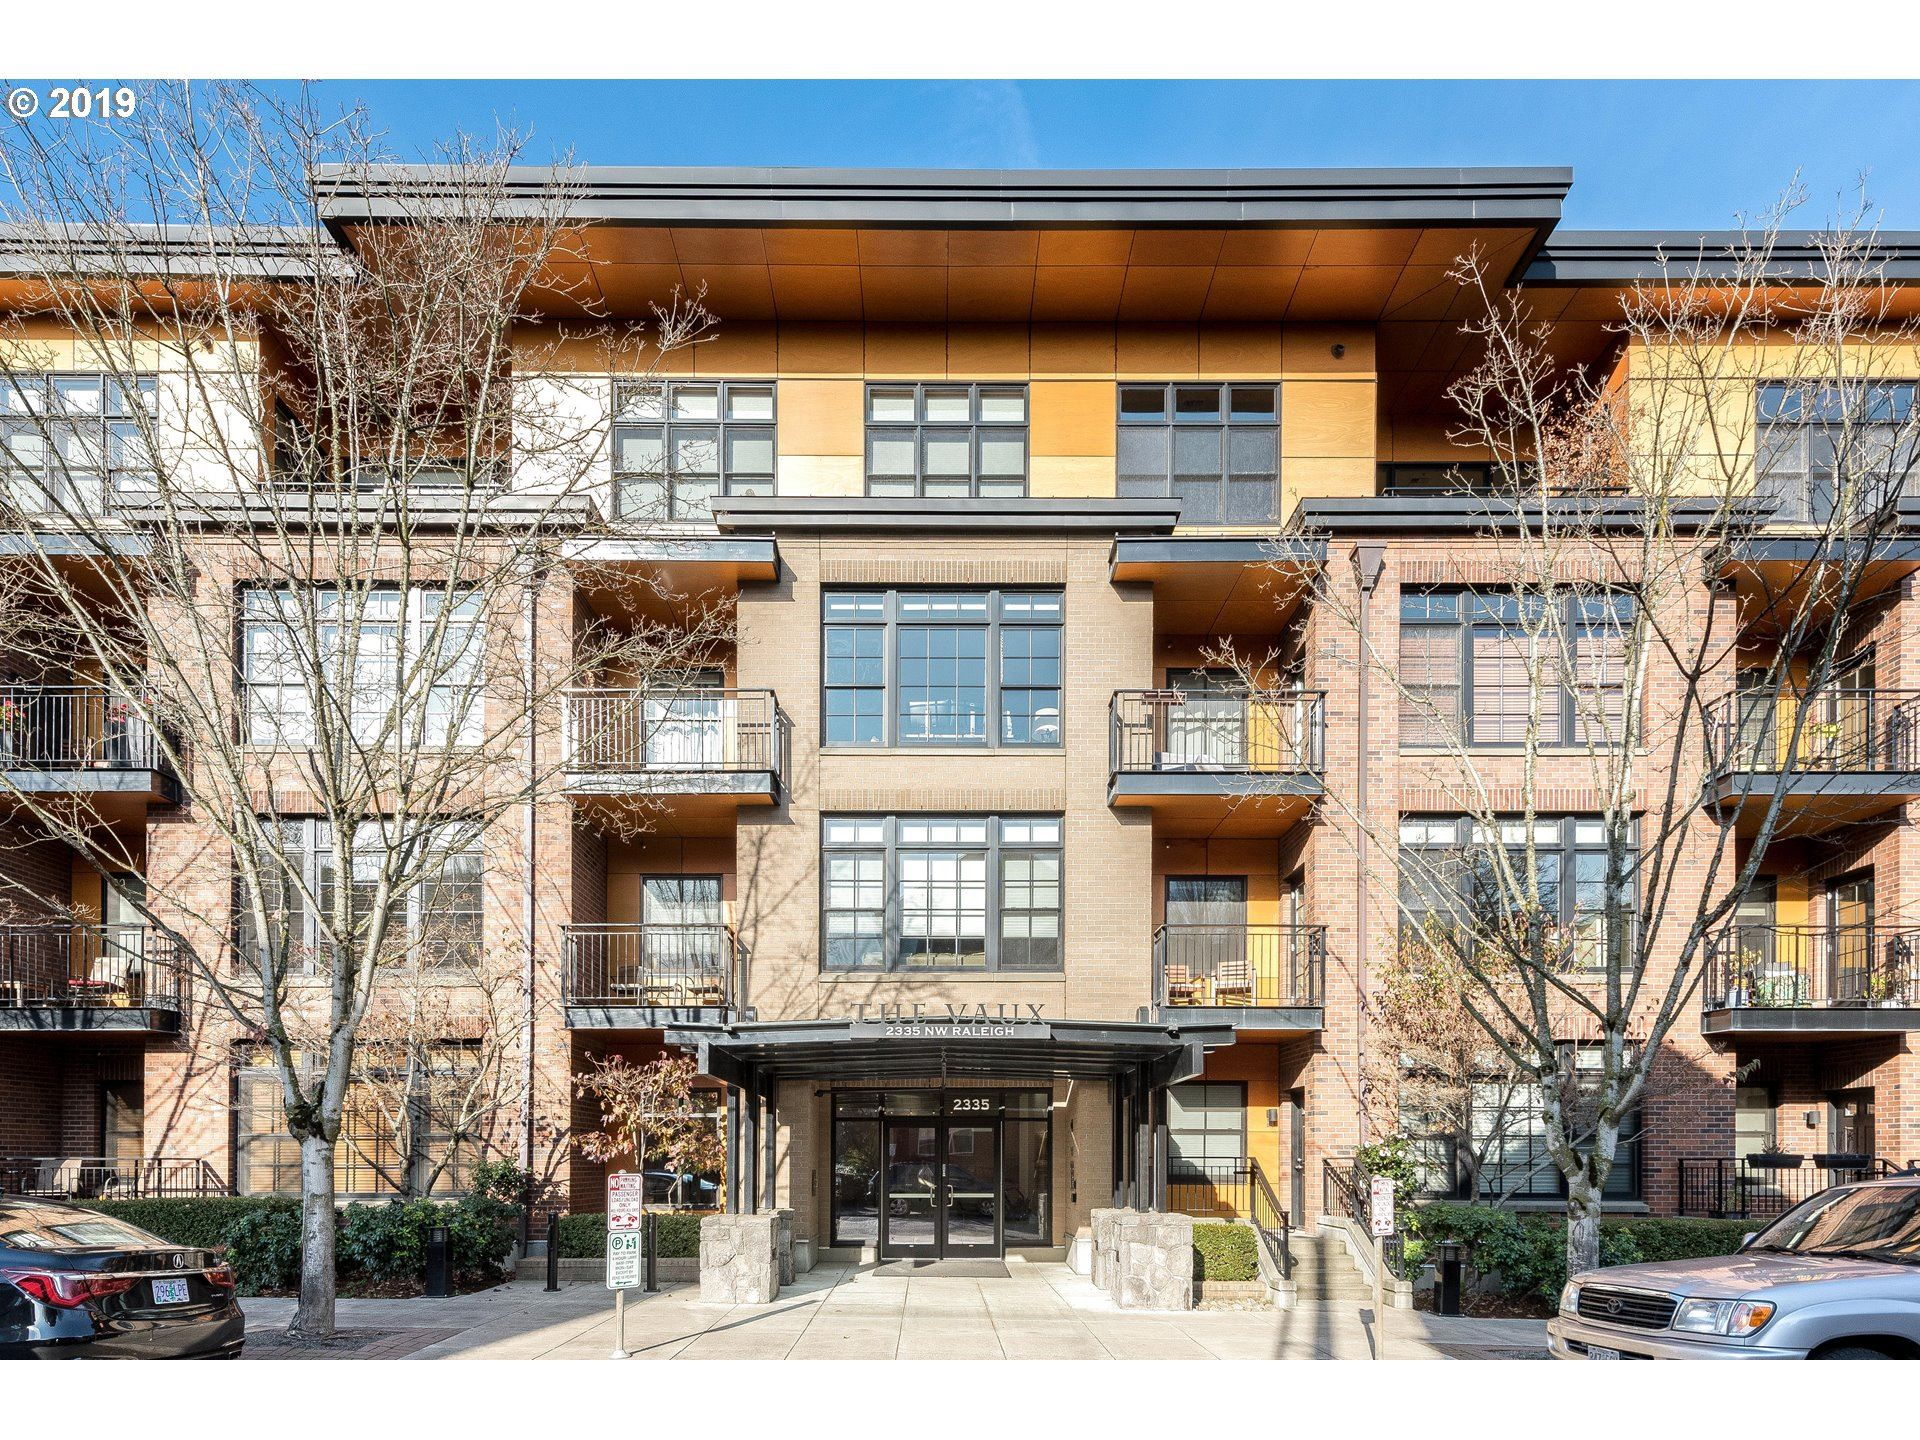 2335 NW RALEIGH ST #233, Portland, OR 97210 - MLS#: 19112428